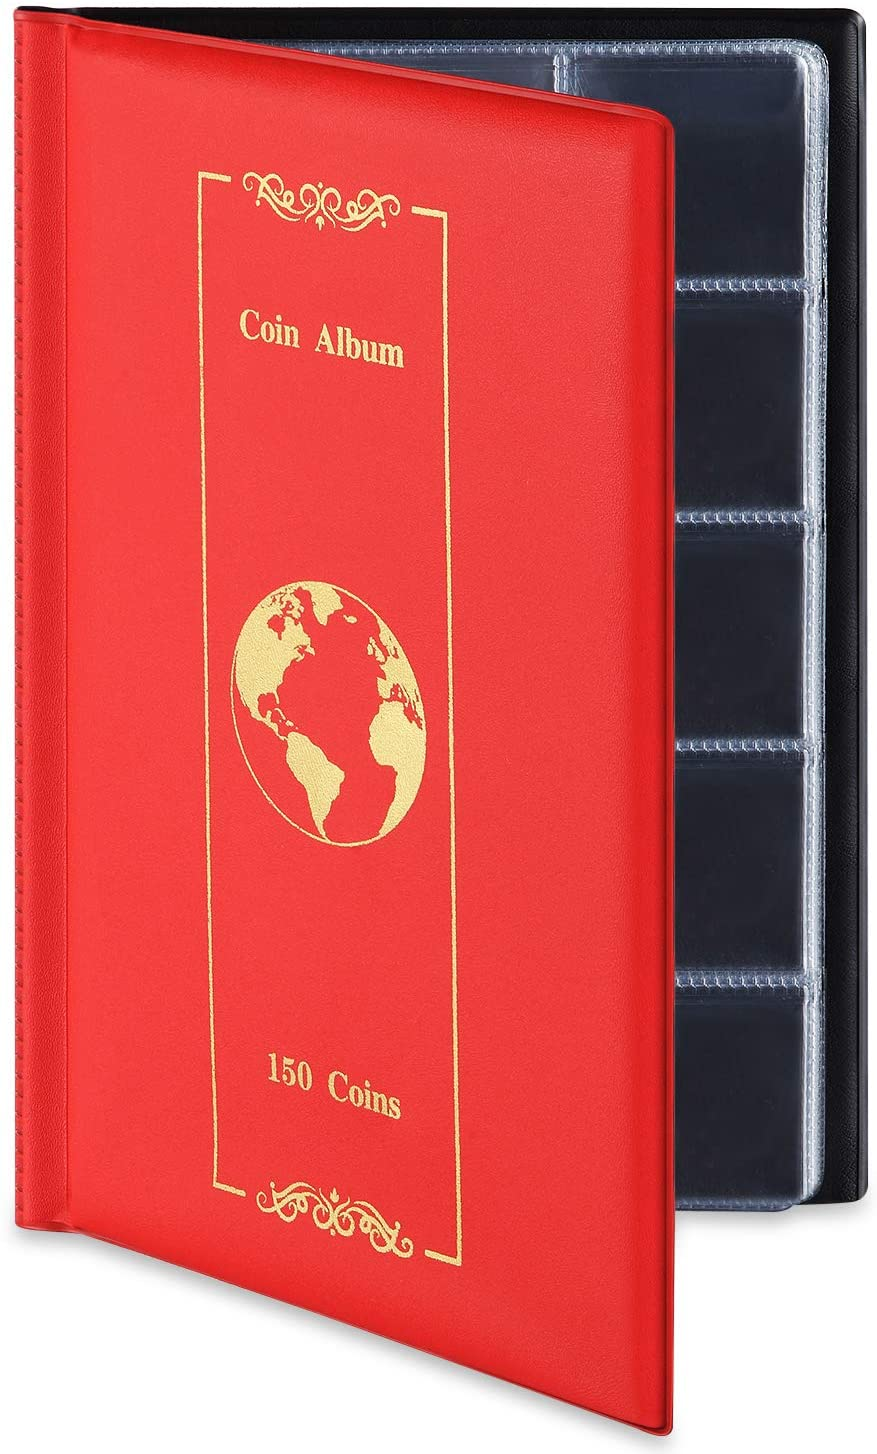 MUDOR Coin Collection Holder Album for Collectors Coin Collection Book Supplies 1.77x1.77 Inches 150 Pockets Red